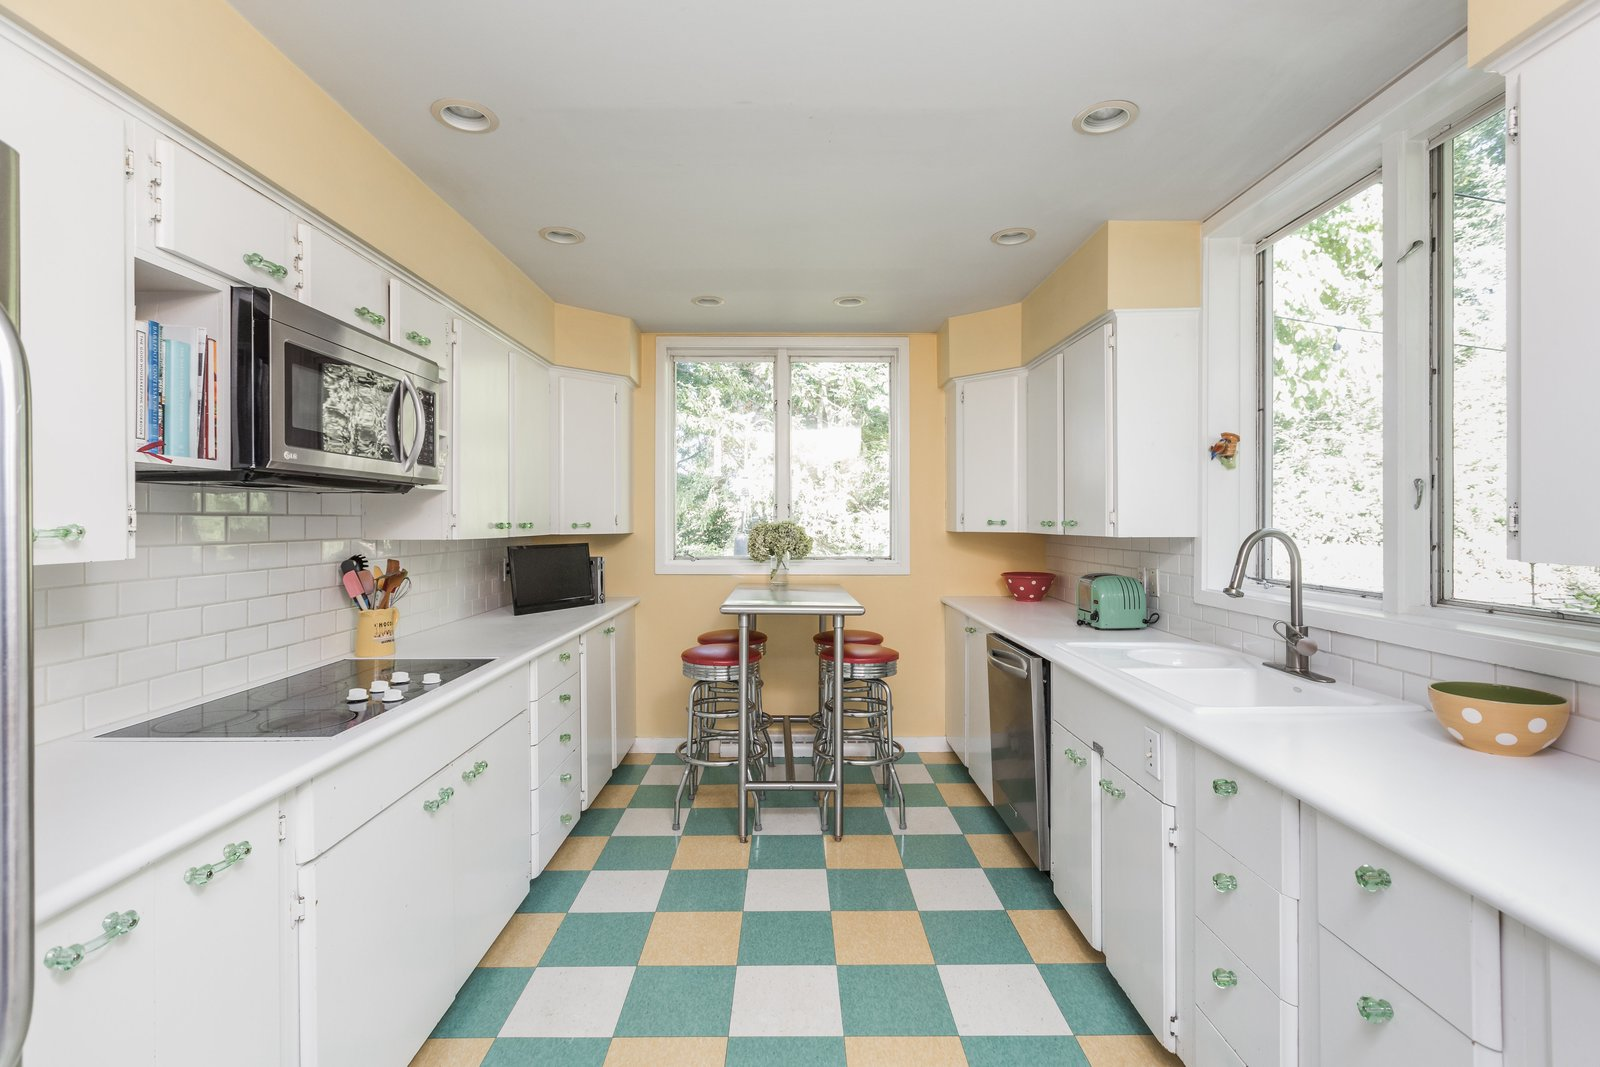 Kitchen, Refrigerator, Cooktops, Microwave, Dishwasher, White Cabinet, Drop In Sink, Recessed Lighting, and Ceramic Tile Backsplashe  Photo 6 of 10 in A Midcentury Gem by a Famed Indiana Architect Offered at $450K